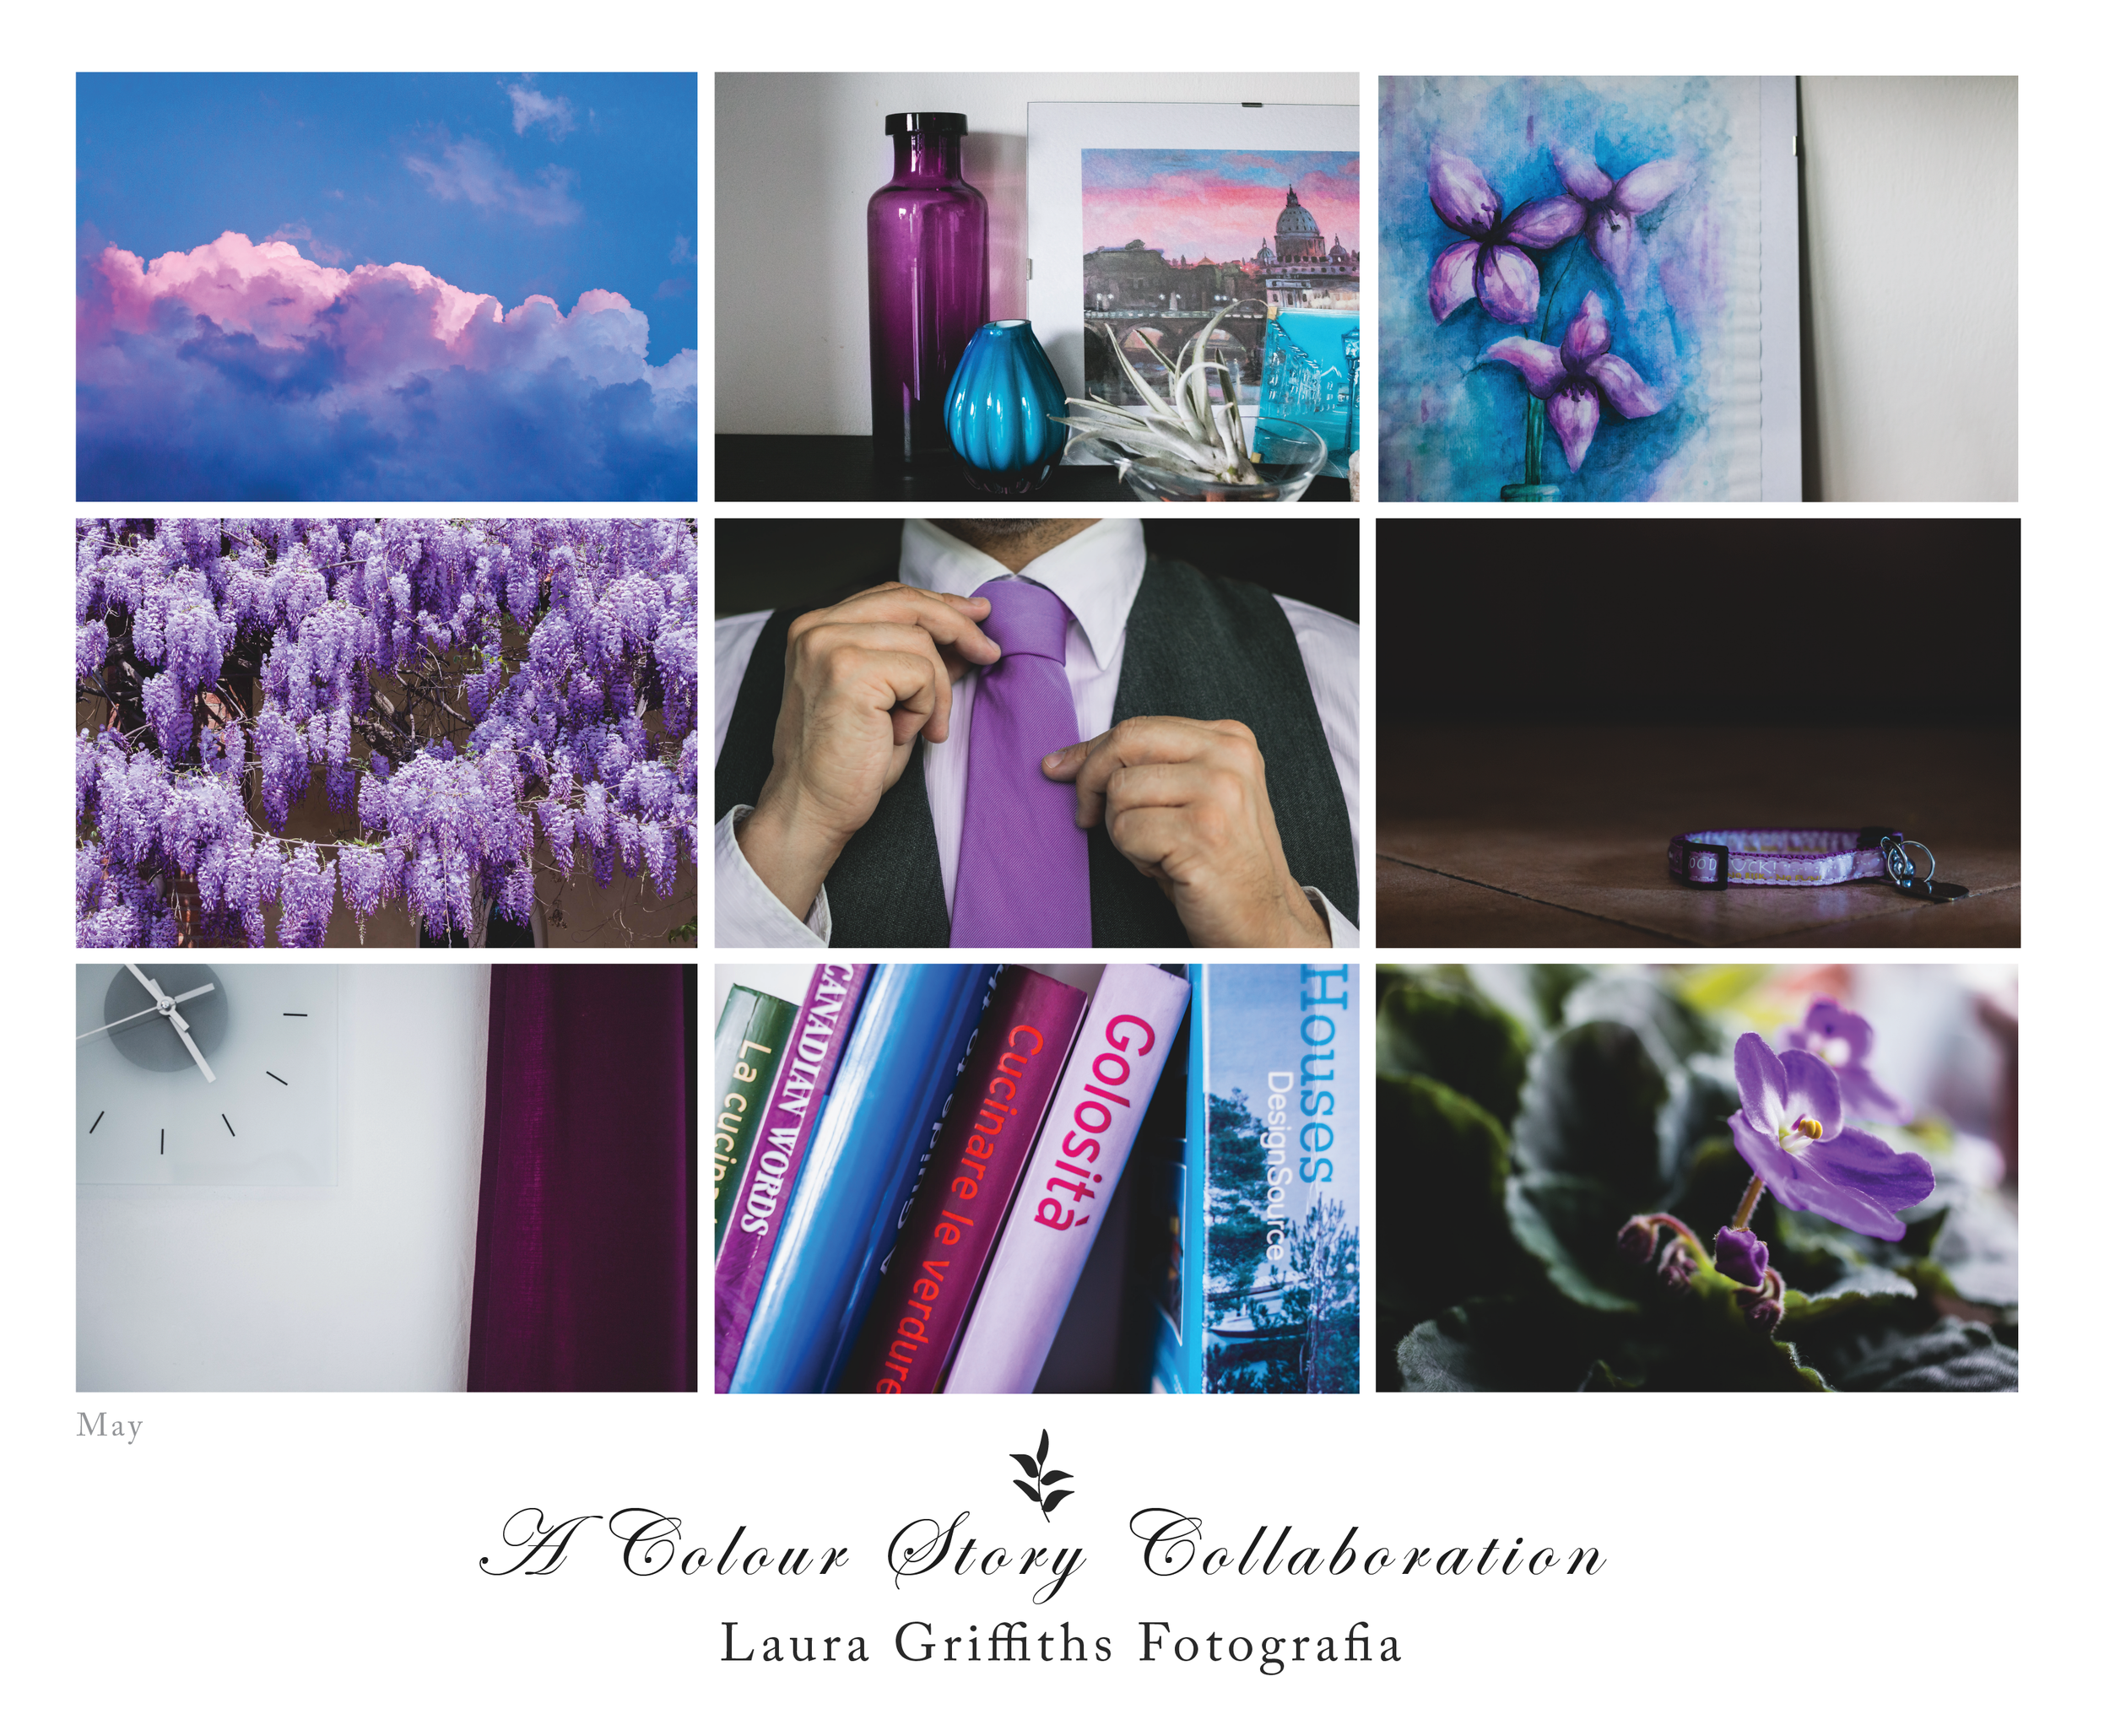 Color Story Collaboration Laura Griffiths Fotografia Torino Italia May Purple